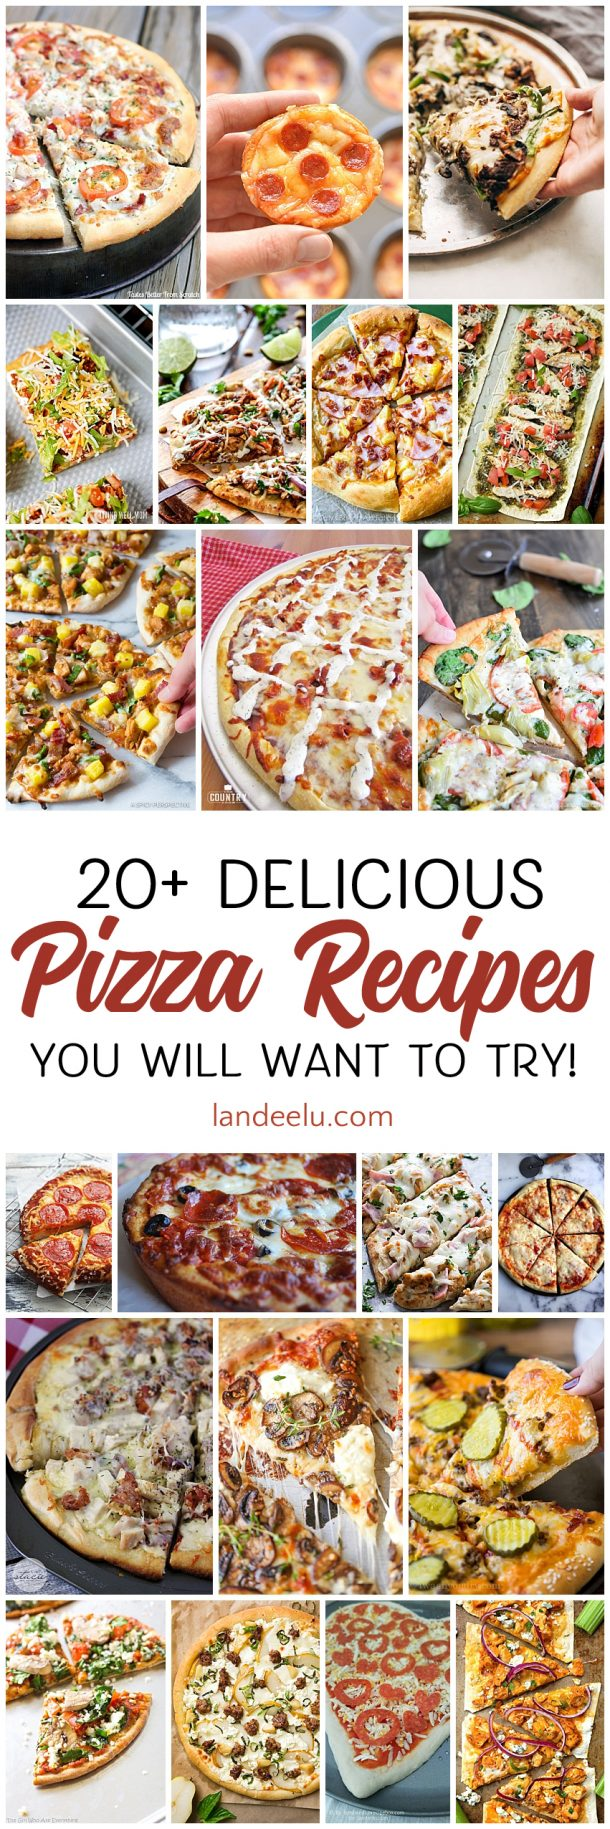 Yummy pizza recipes to try for our weekly pizza night!